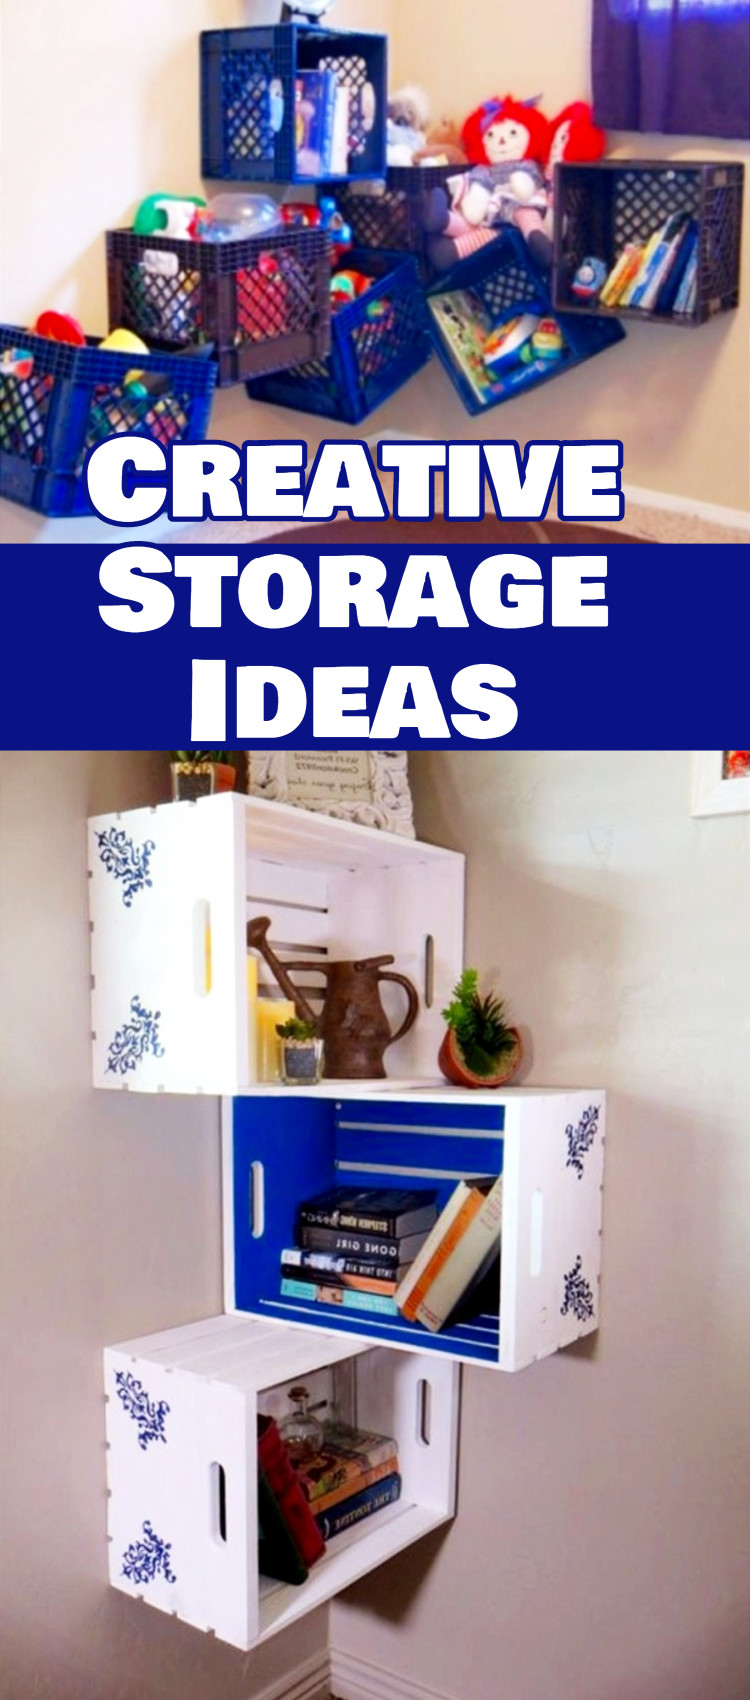 Home storage ideas and creative storage solutions for small spaces, small rooms, RVs, campers, apartments and condos